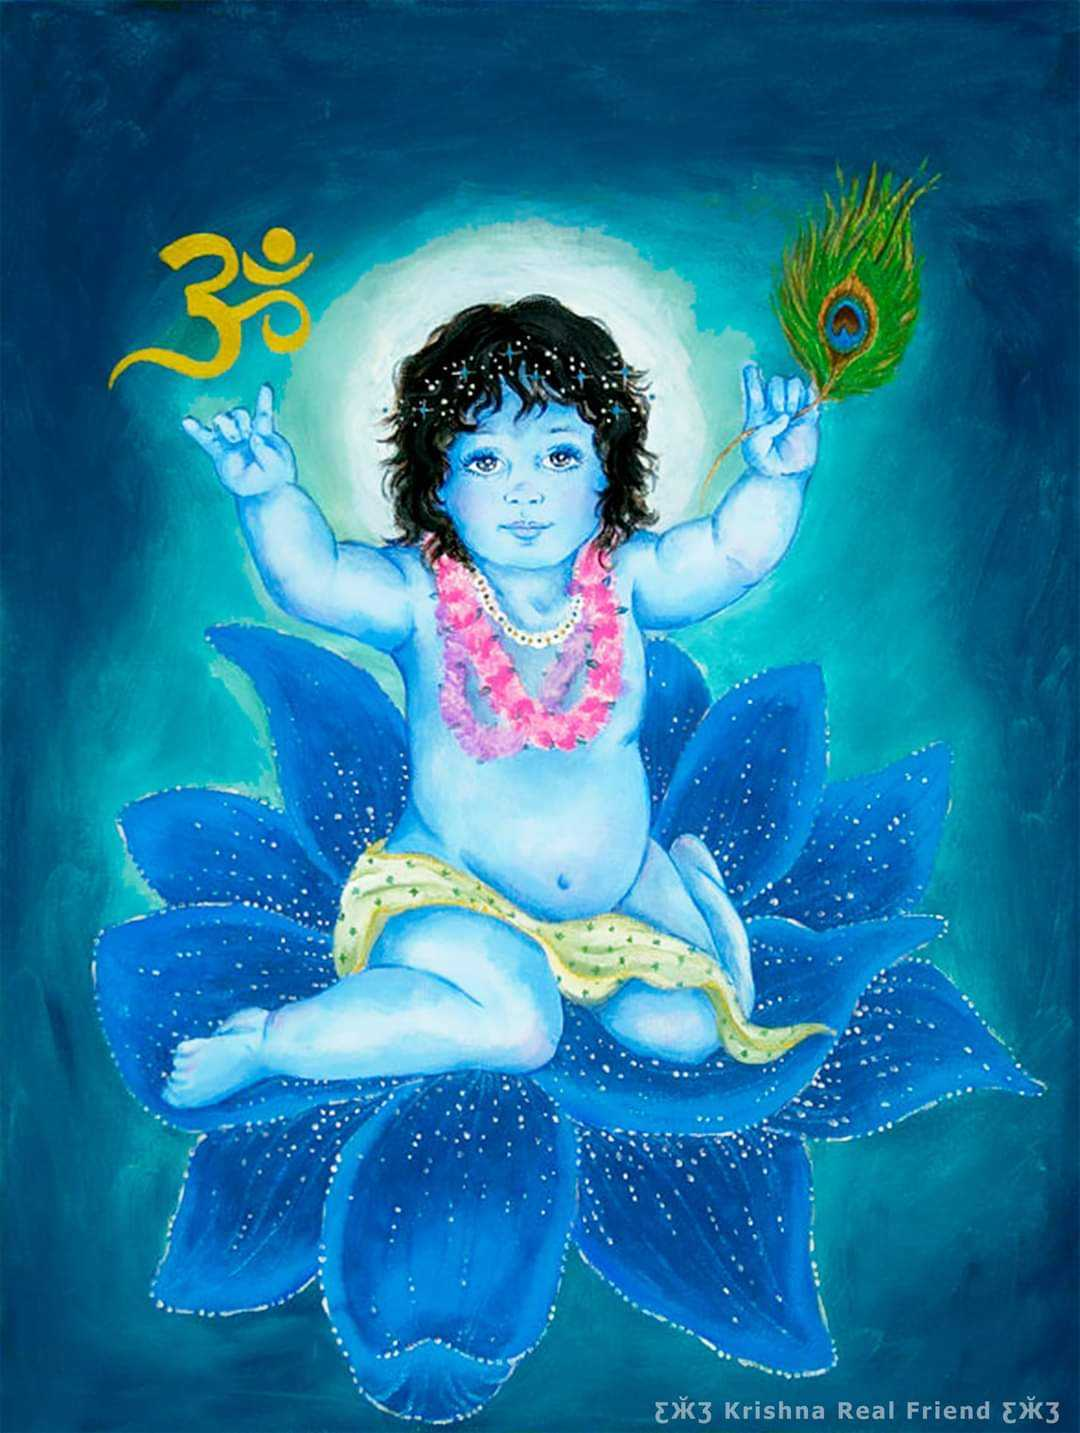 krishna Lord Krishna Images - krishna Lord Krishna Images